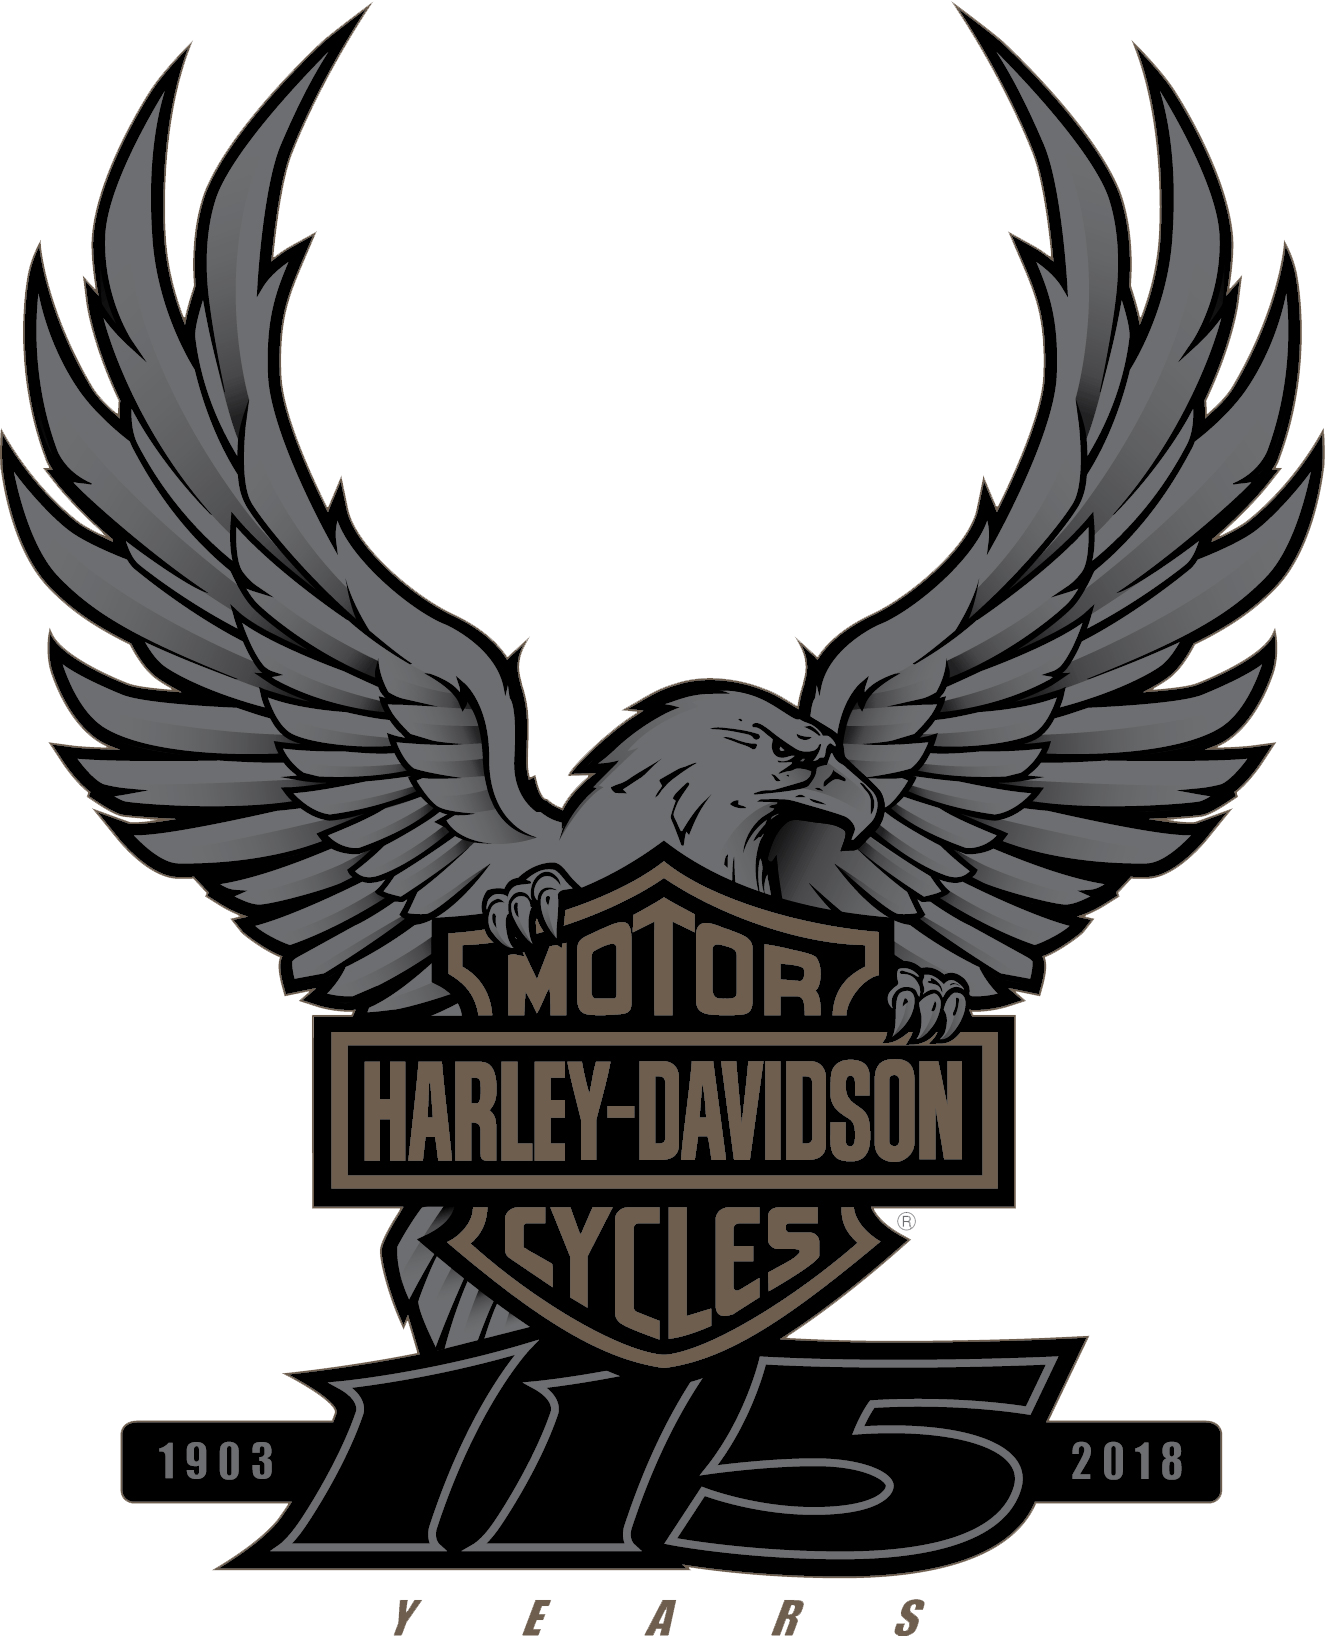 Harley Davidson's 115th